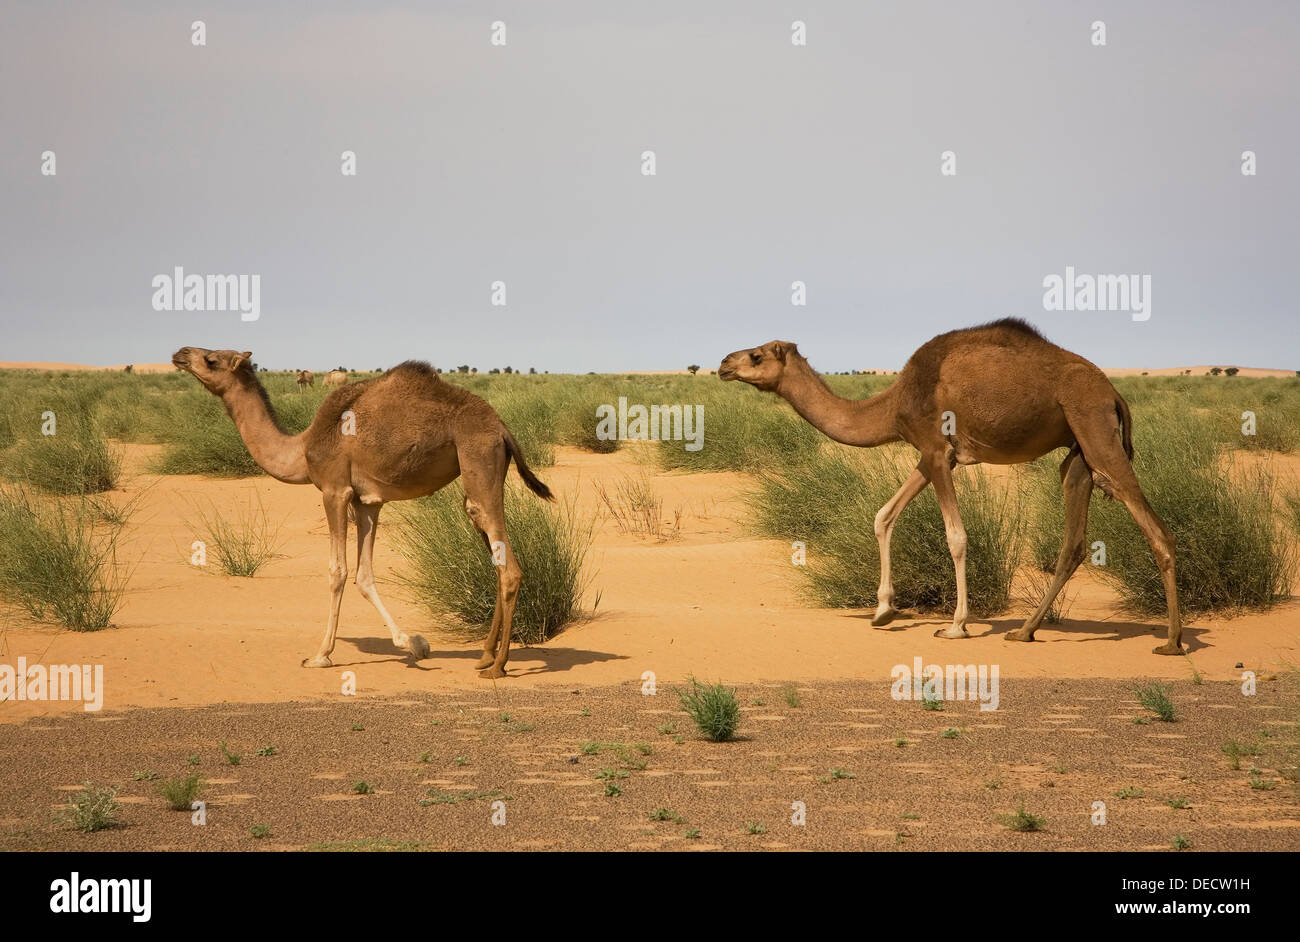 Dromedary camels in grass grazing area in desert of Western Sahara after recent rare rainfall, Mauritania - Stock Image